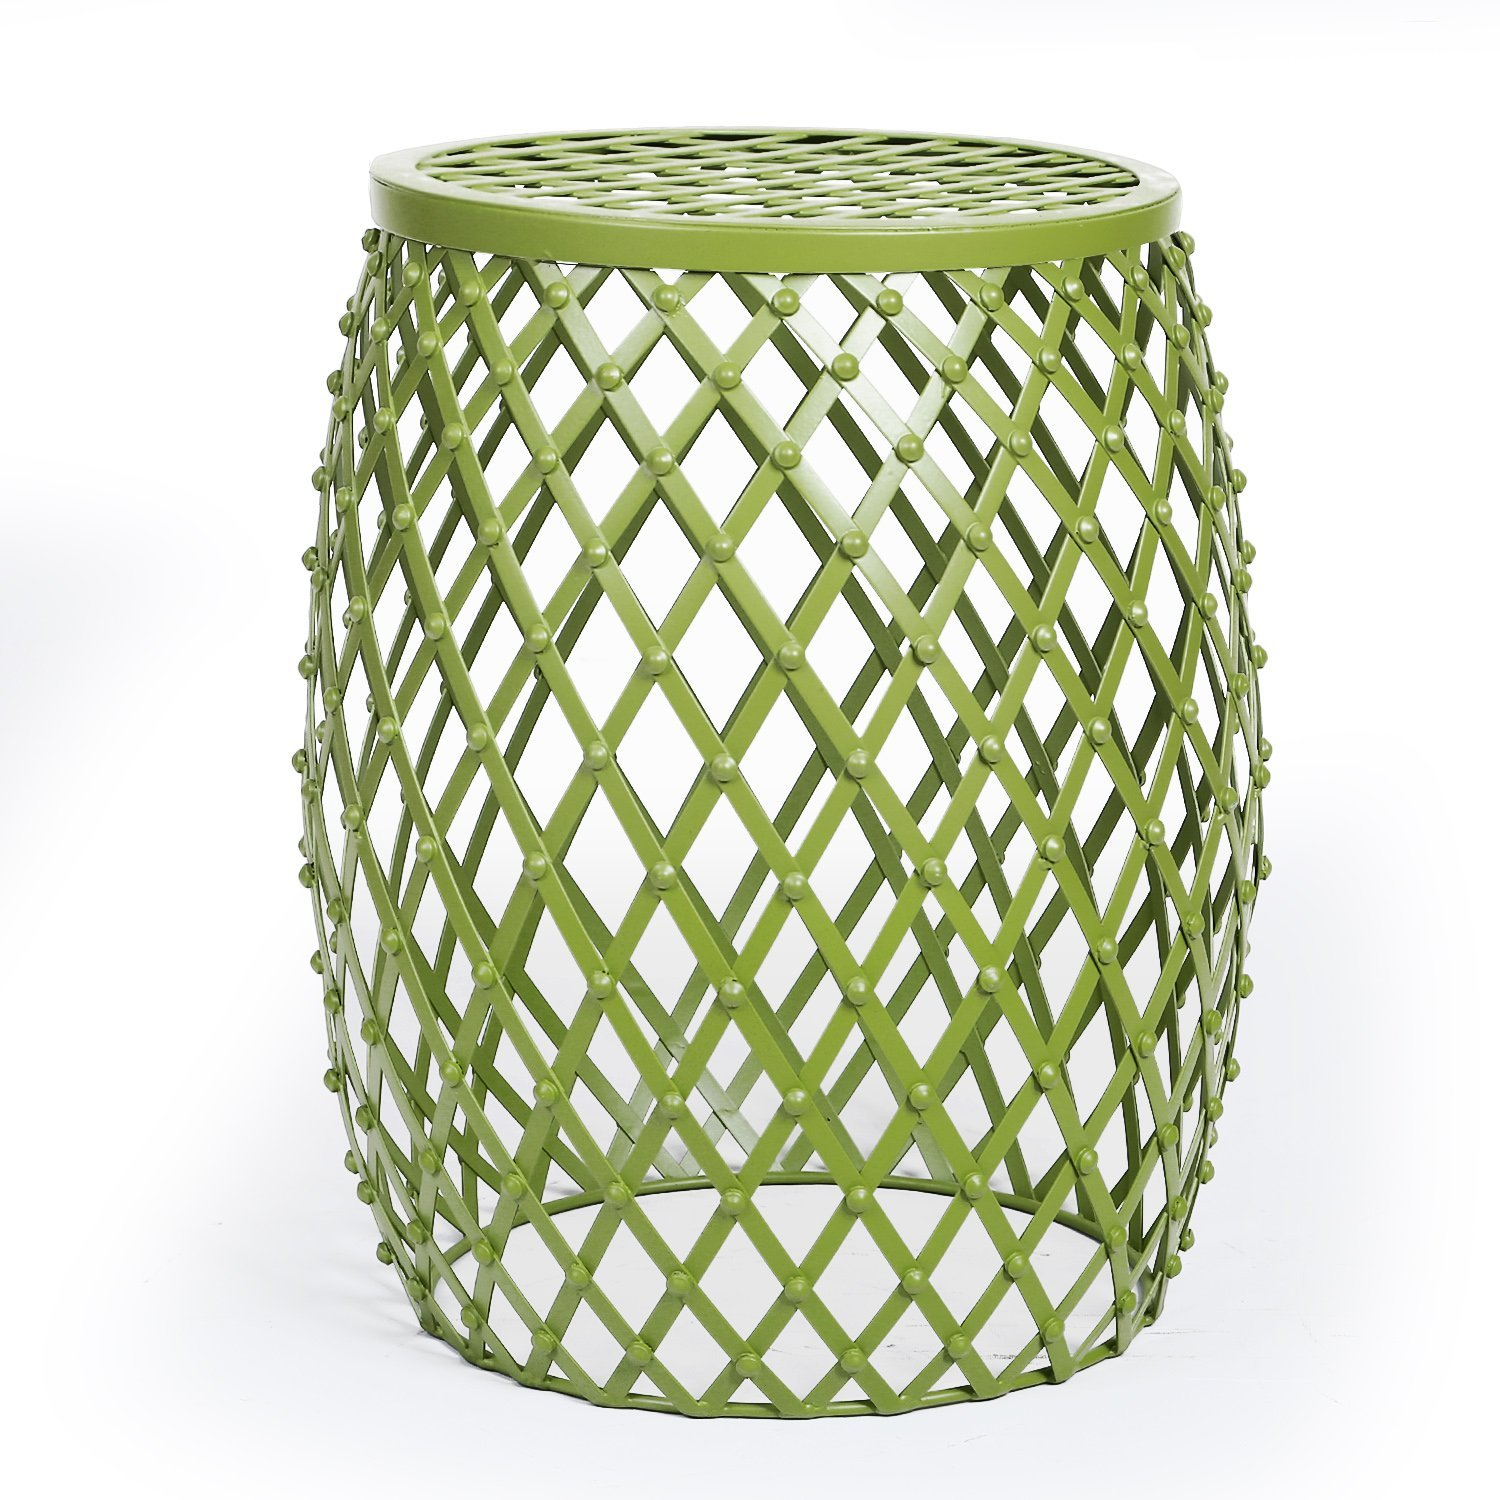 adeco home garden accents wire round iron metal stool accent table side end plant stand hatched diamond pattern for indoor outdoor olive drab green moroccan ikea square shelves